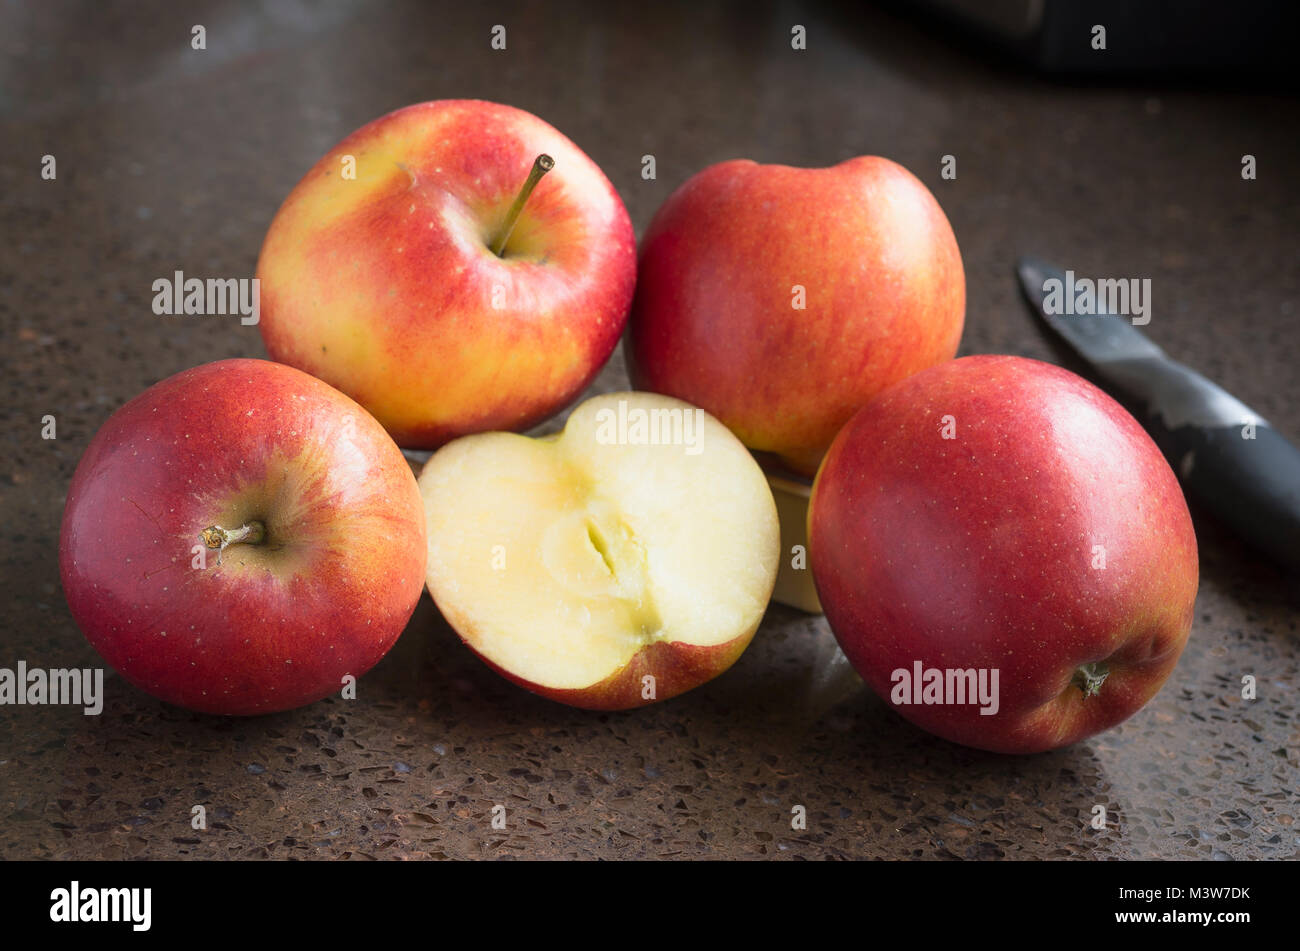 Jazz apples showing clean white flesh of these crisp and juicy eating apples in an English winter - Stock Image